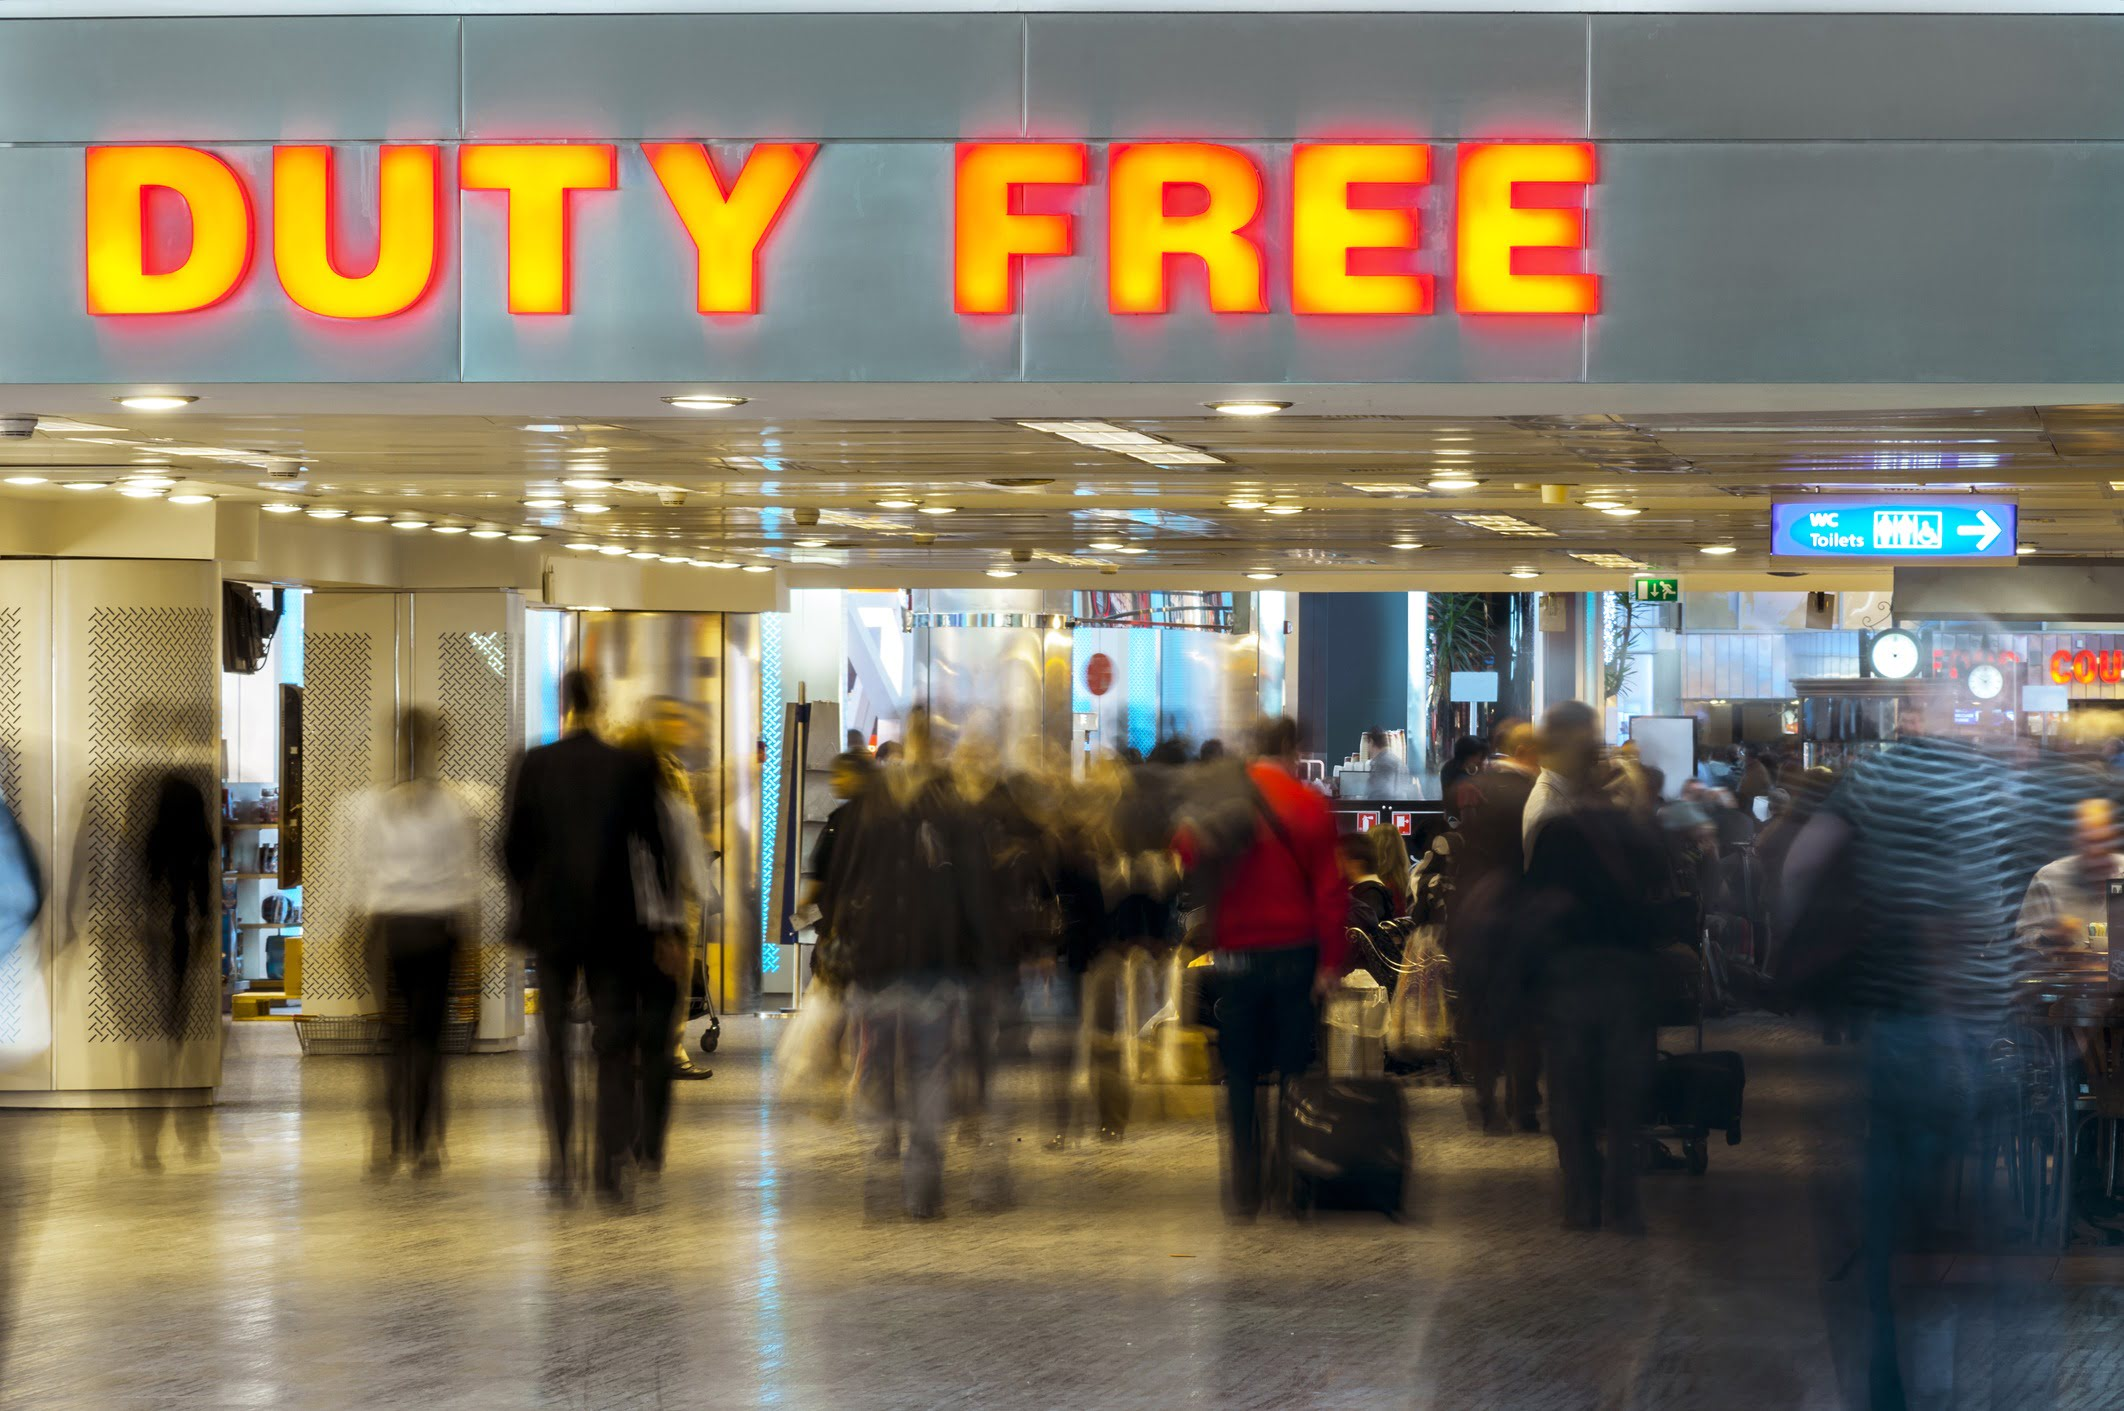 Duty Free store front